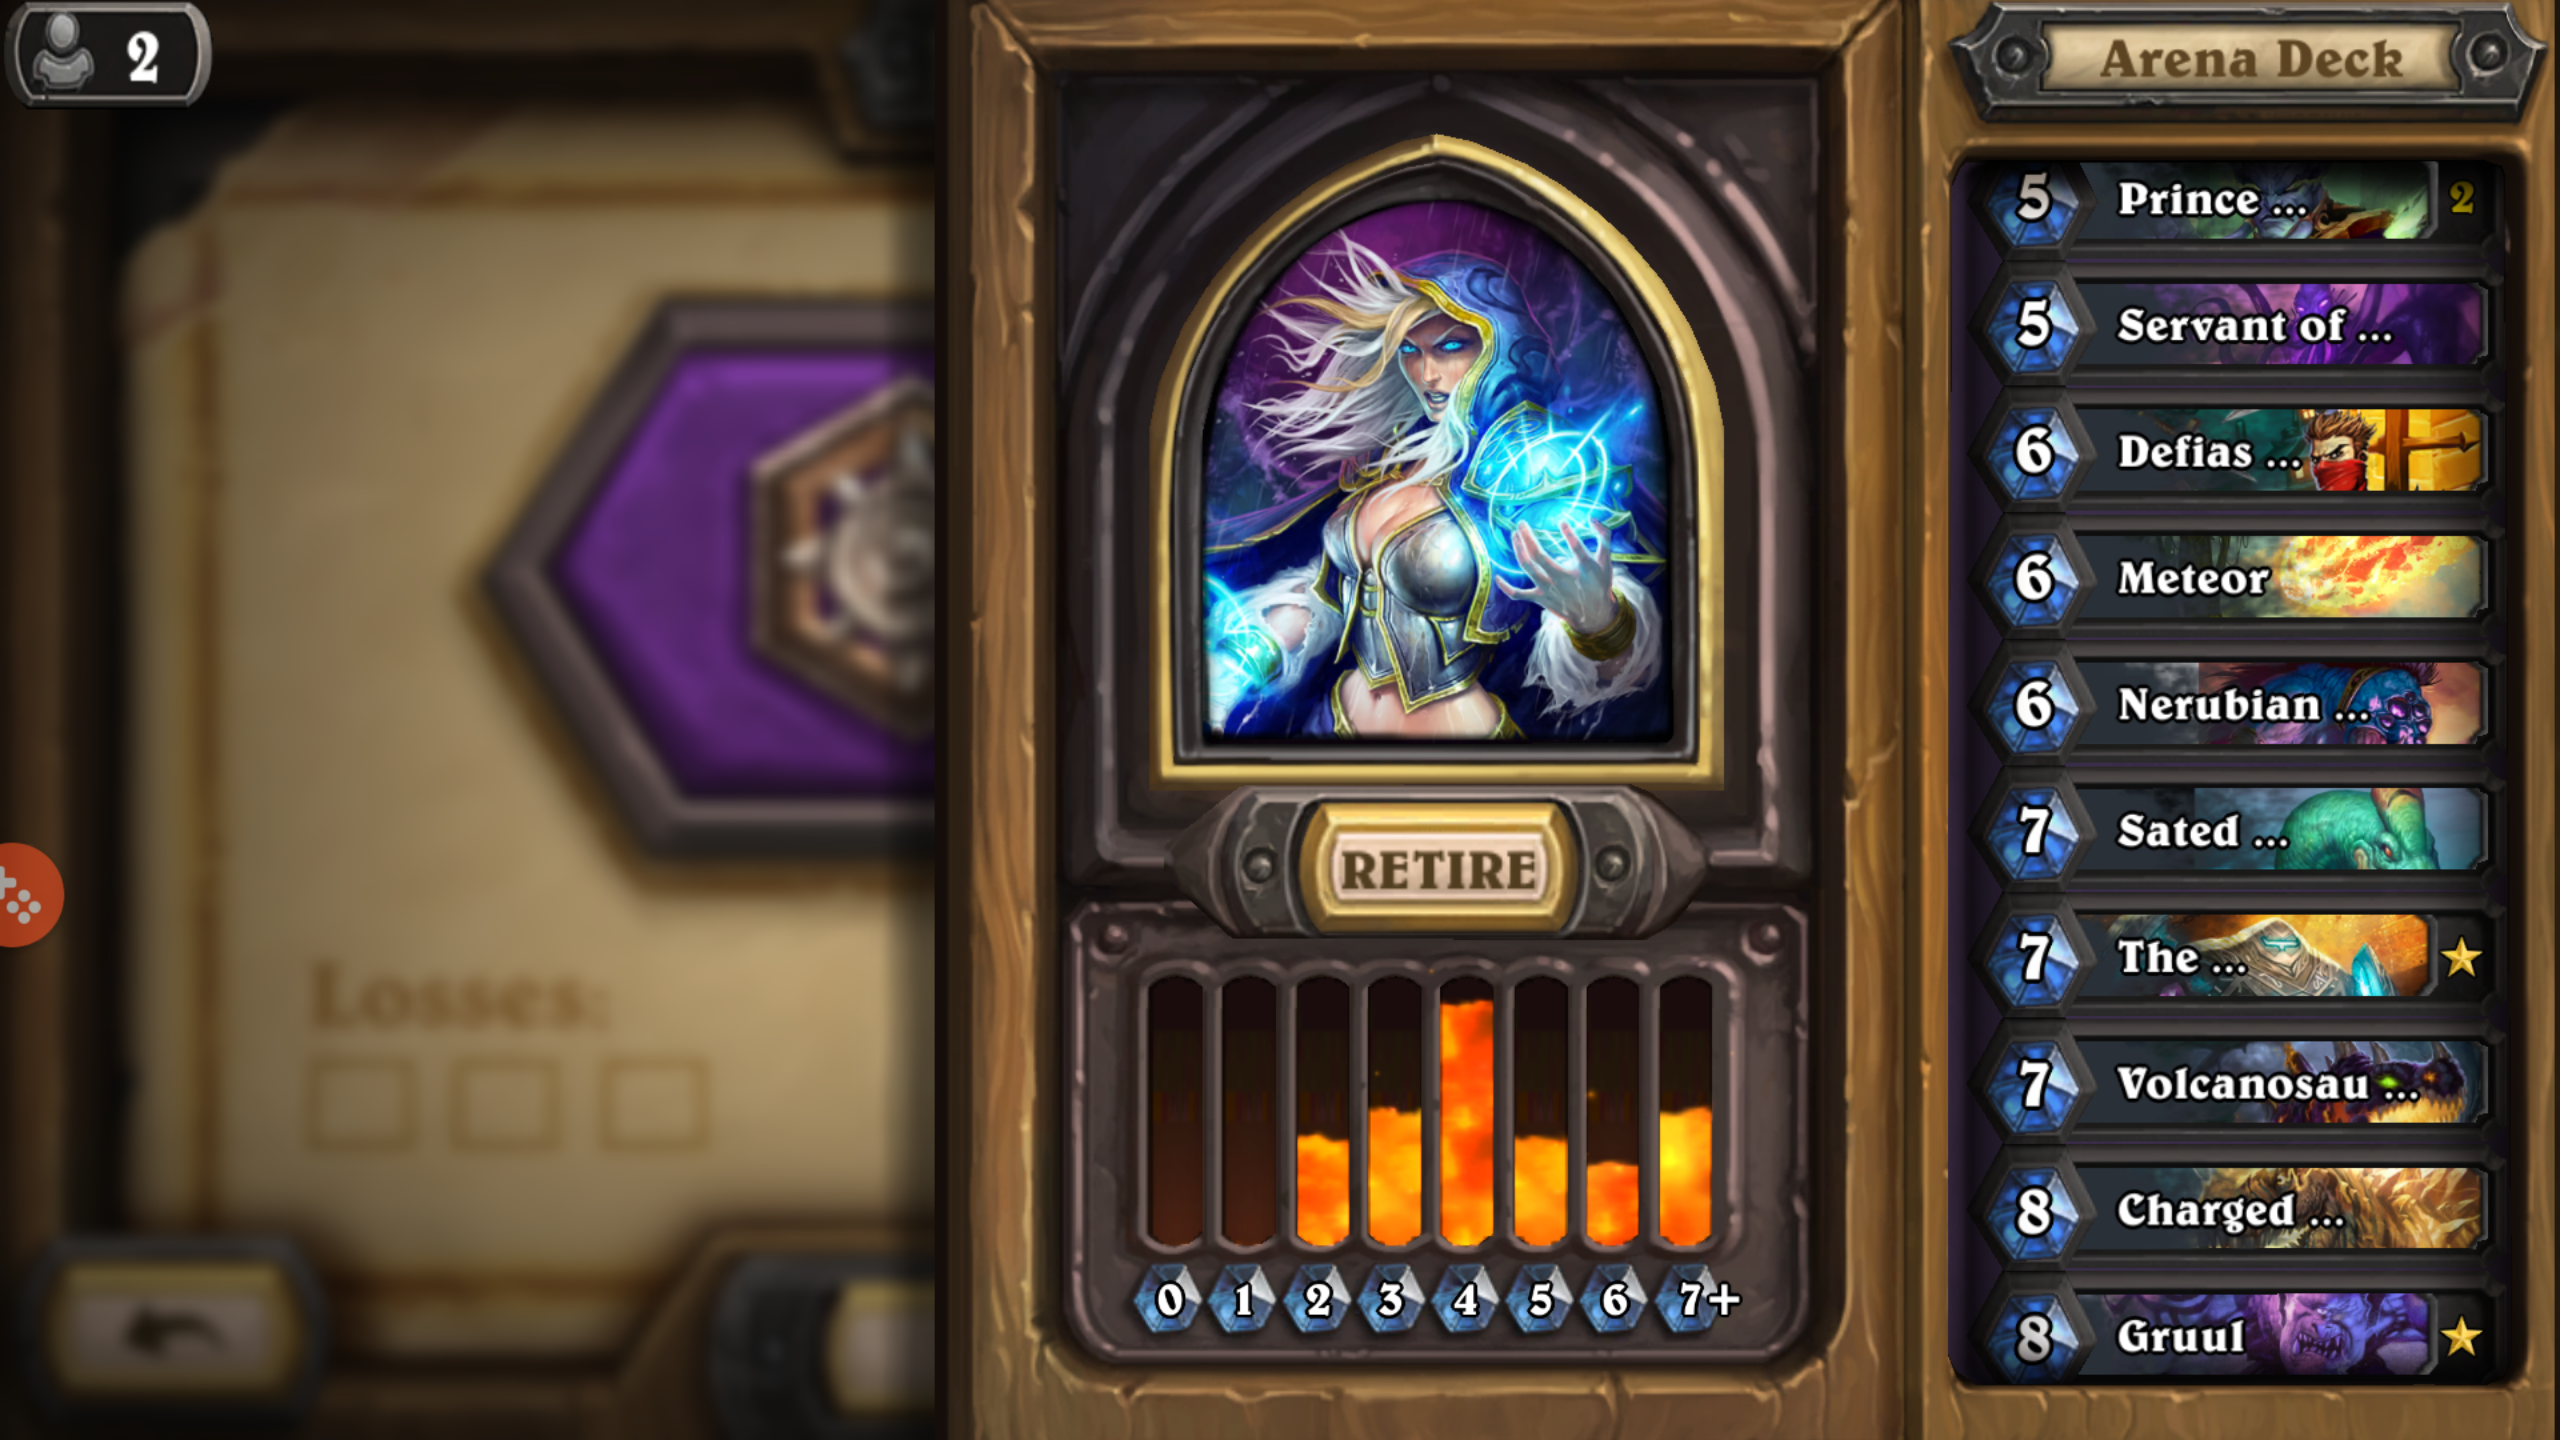 14 legendaries in an arena deck the arena hearthstone game modes